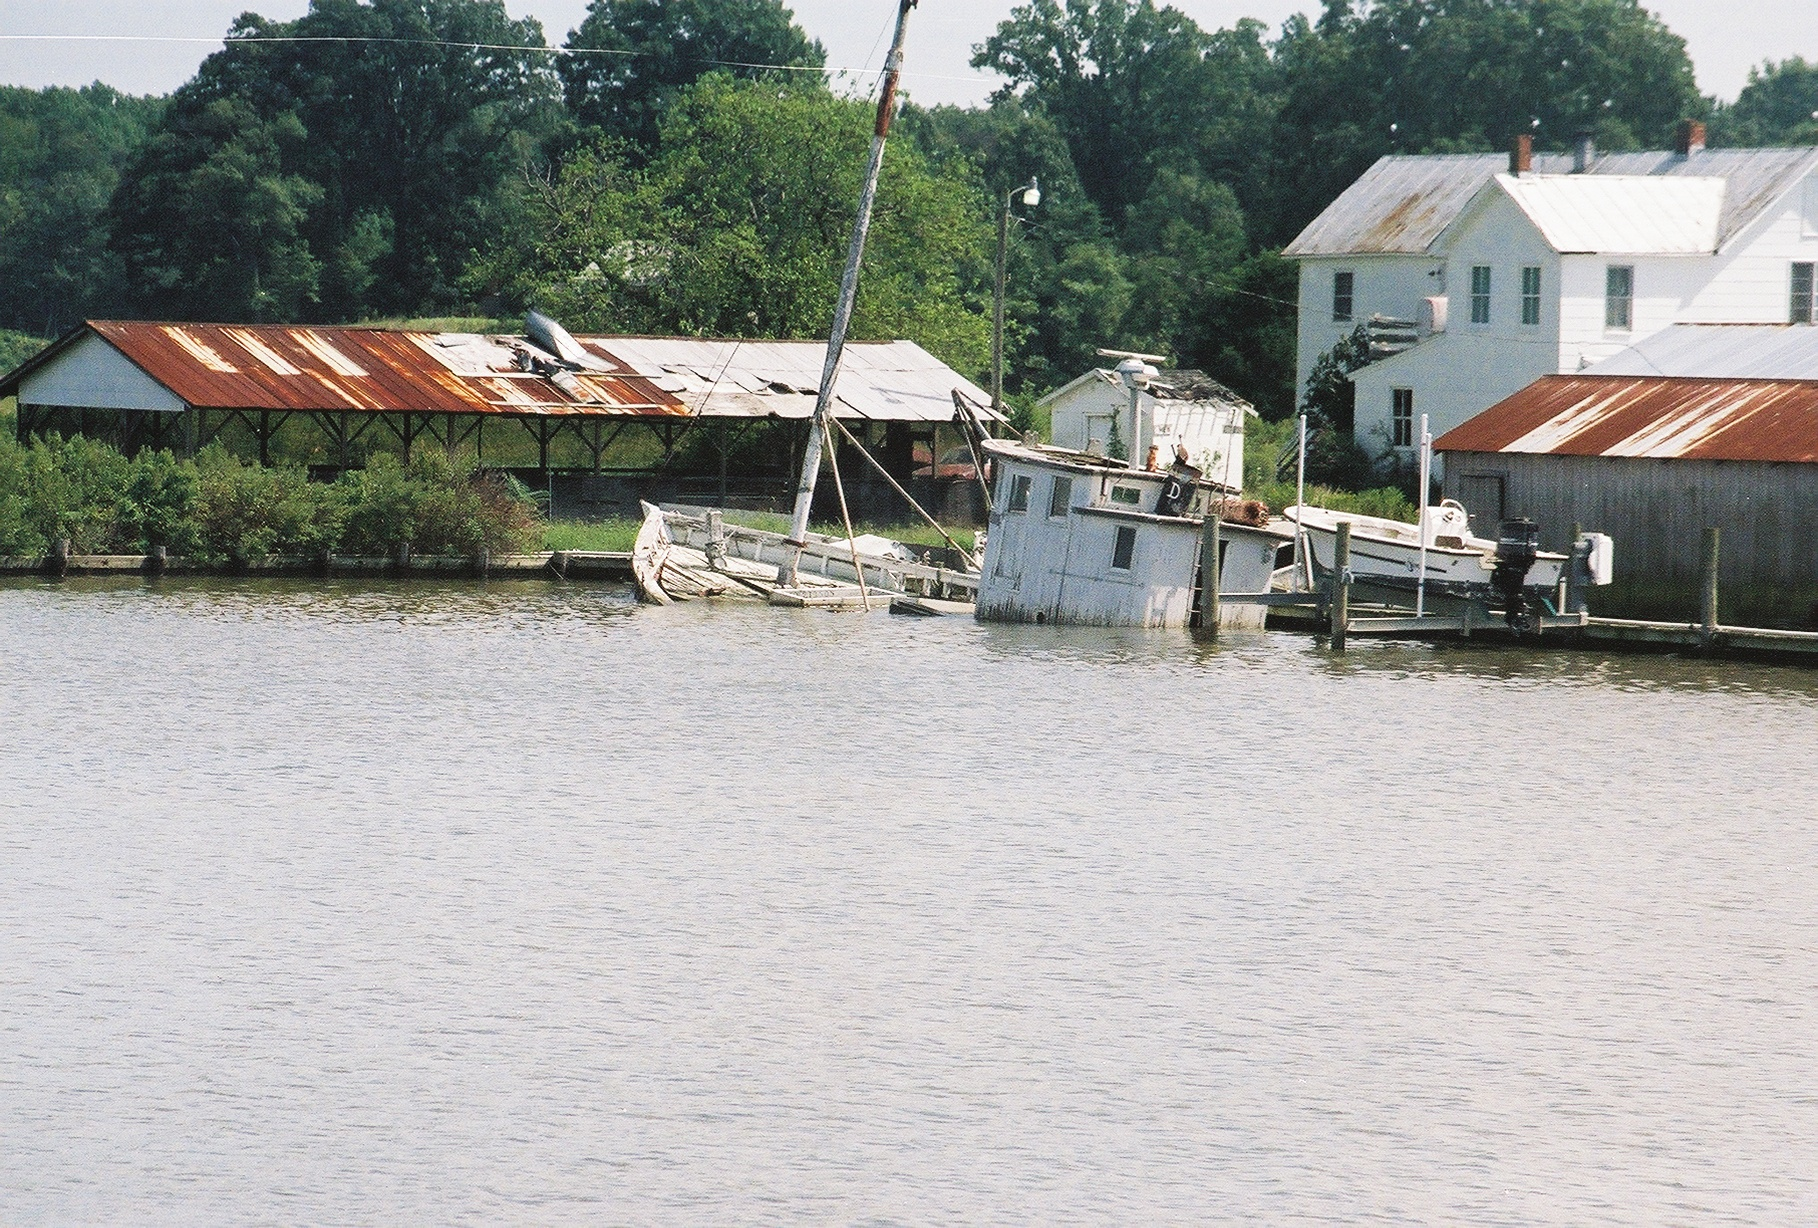 The Chesapeake: Oyster Buyboats, Ships & Steamed Crabs